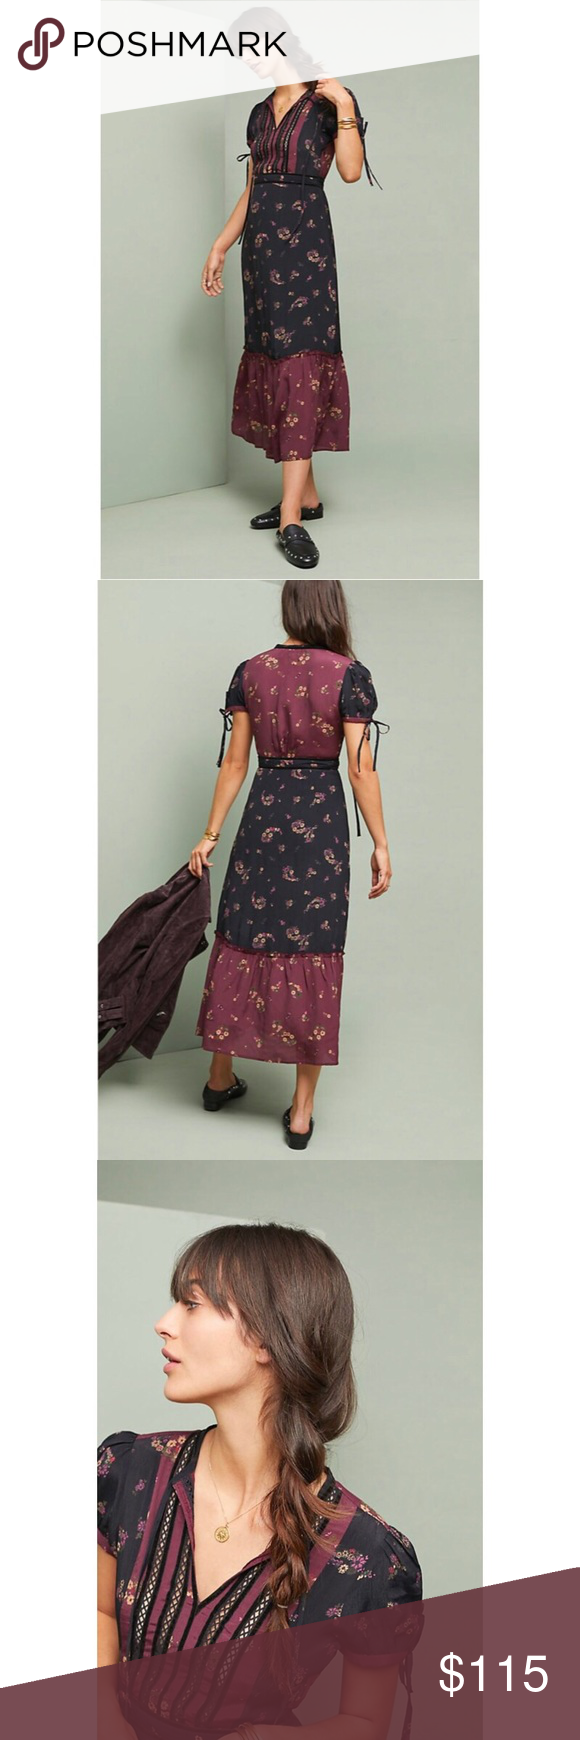 d6525ce5835a NWT Anthropologie Patchwork Dress Patricia patchwork dress. Midi Dress.  Perfectly pieced together patterns offer plenty of color for a statement  piece.